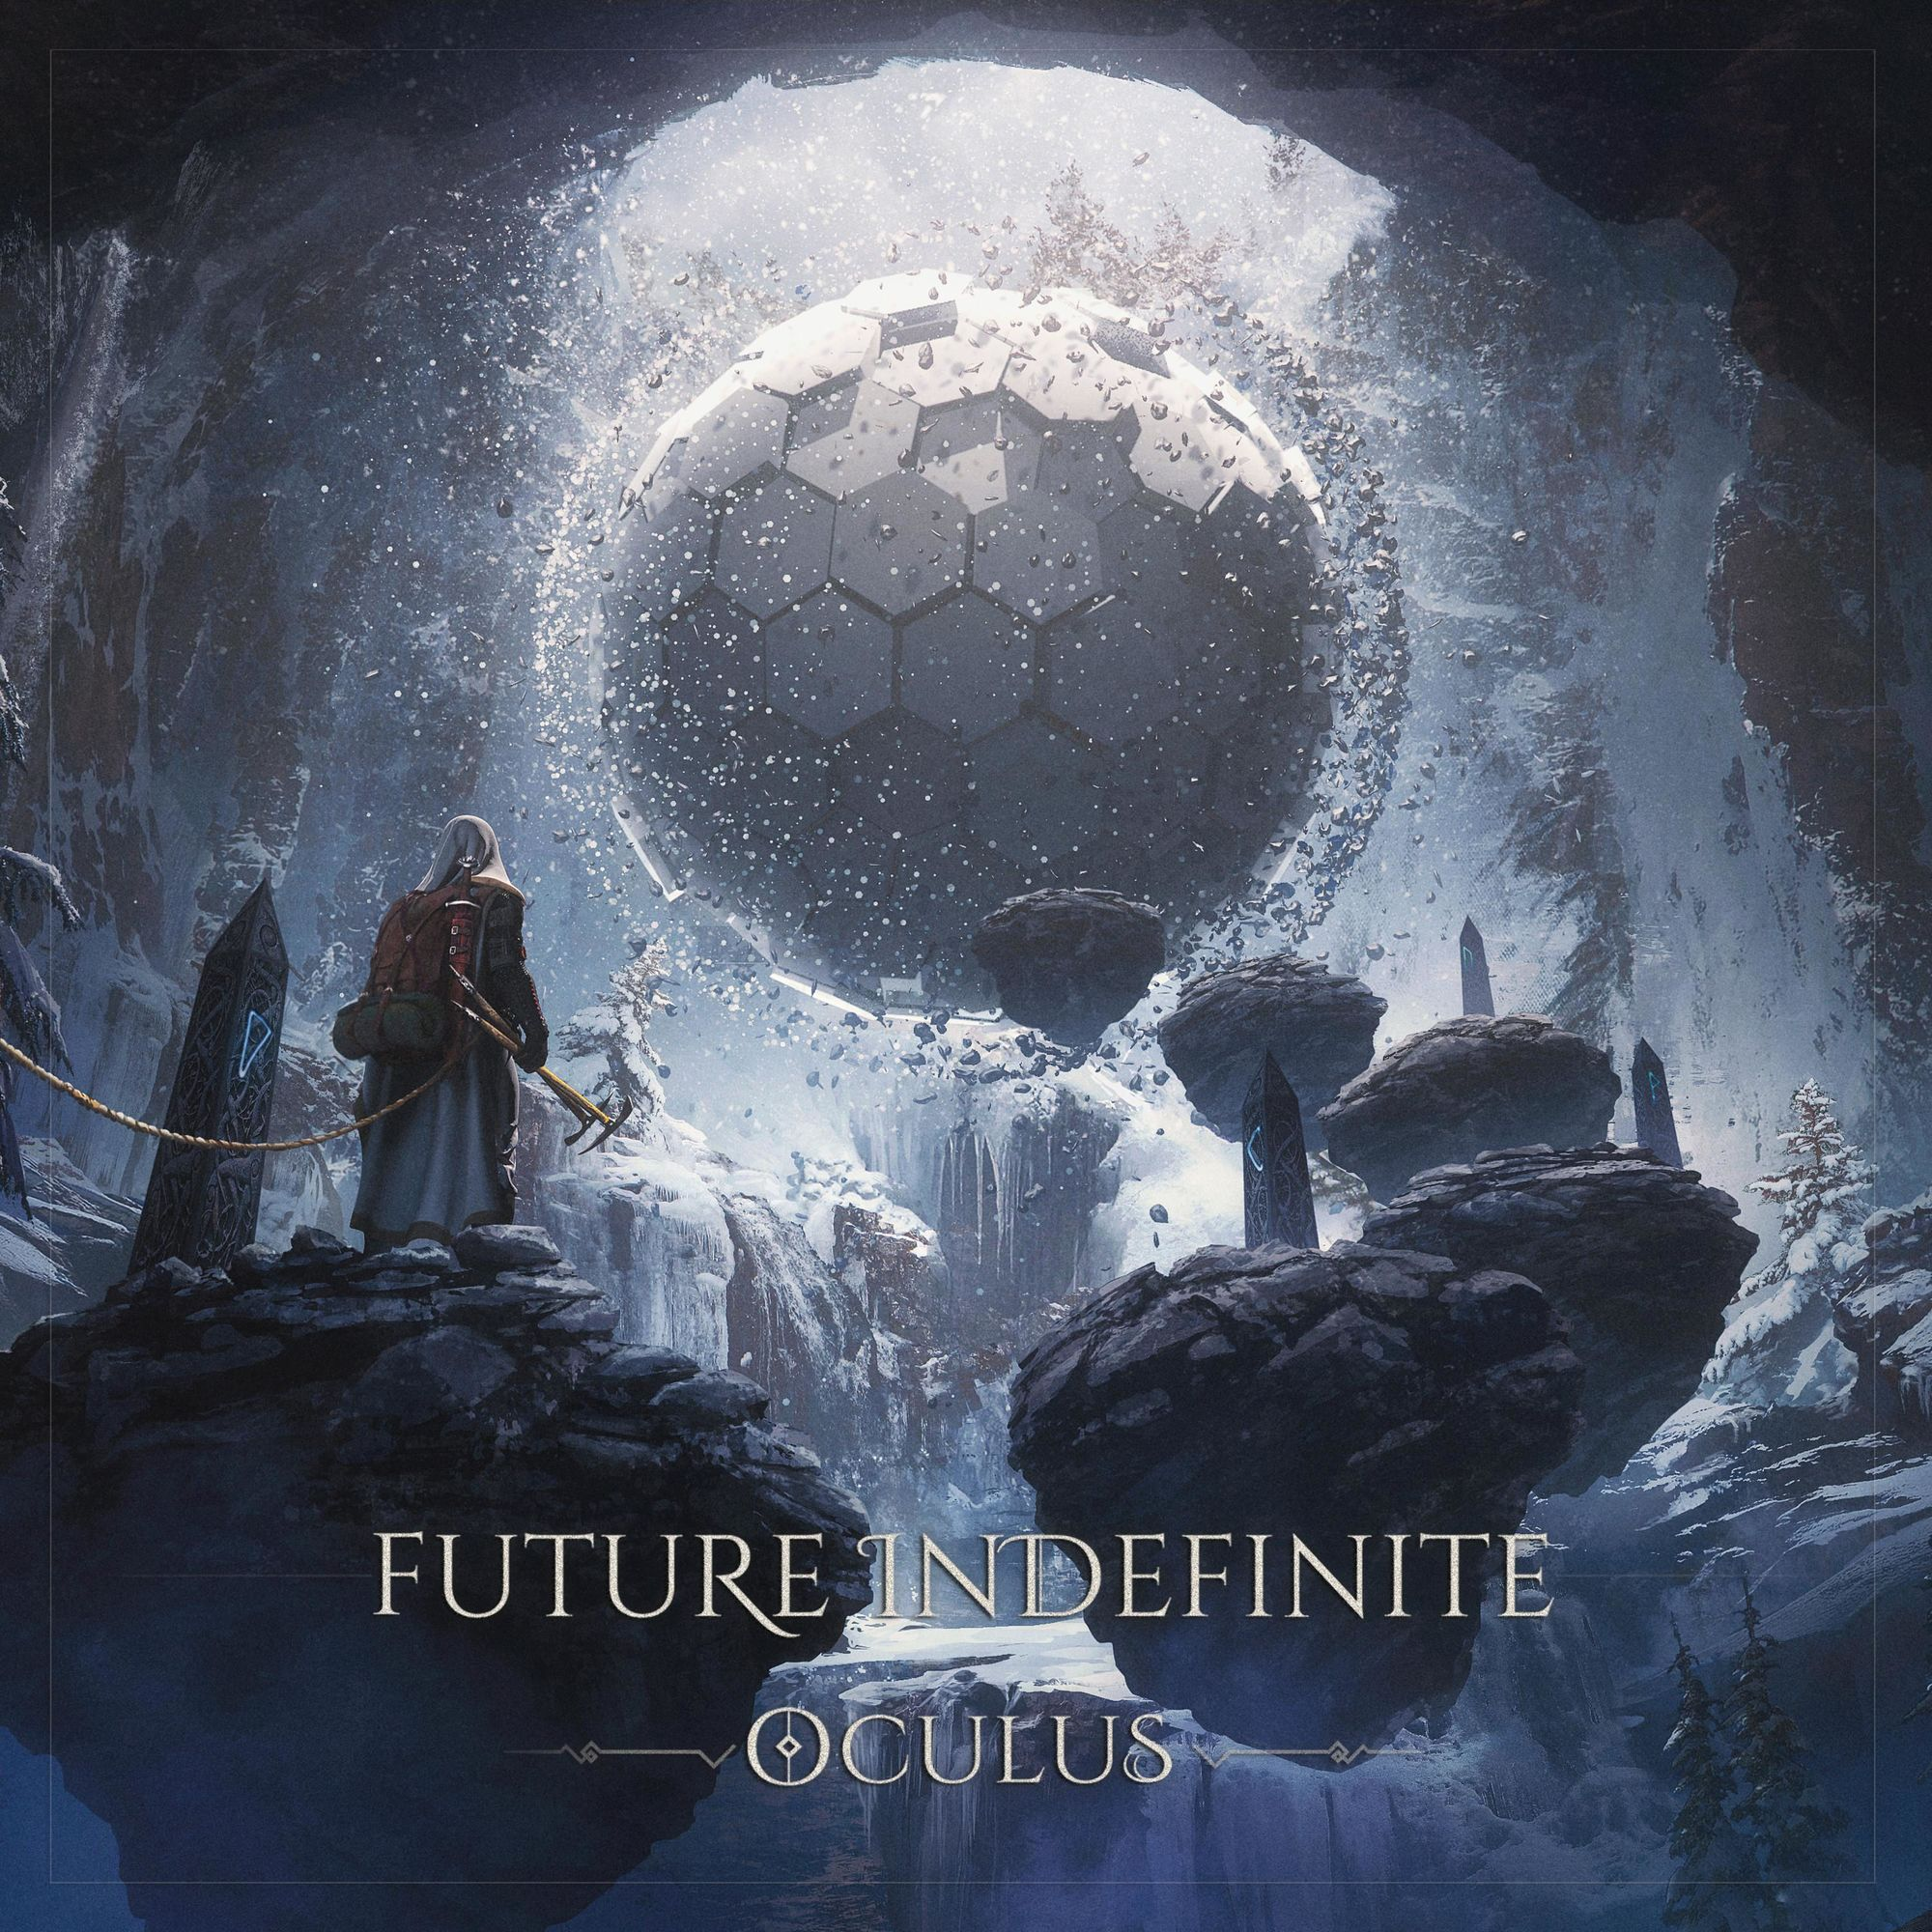 Future Indefinite - Oculus